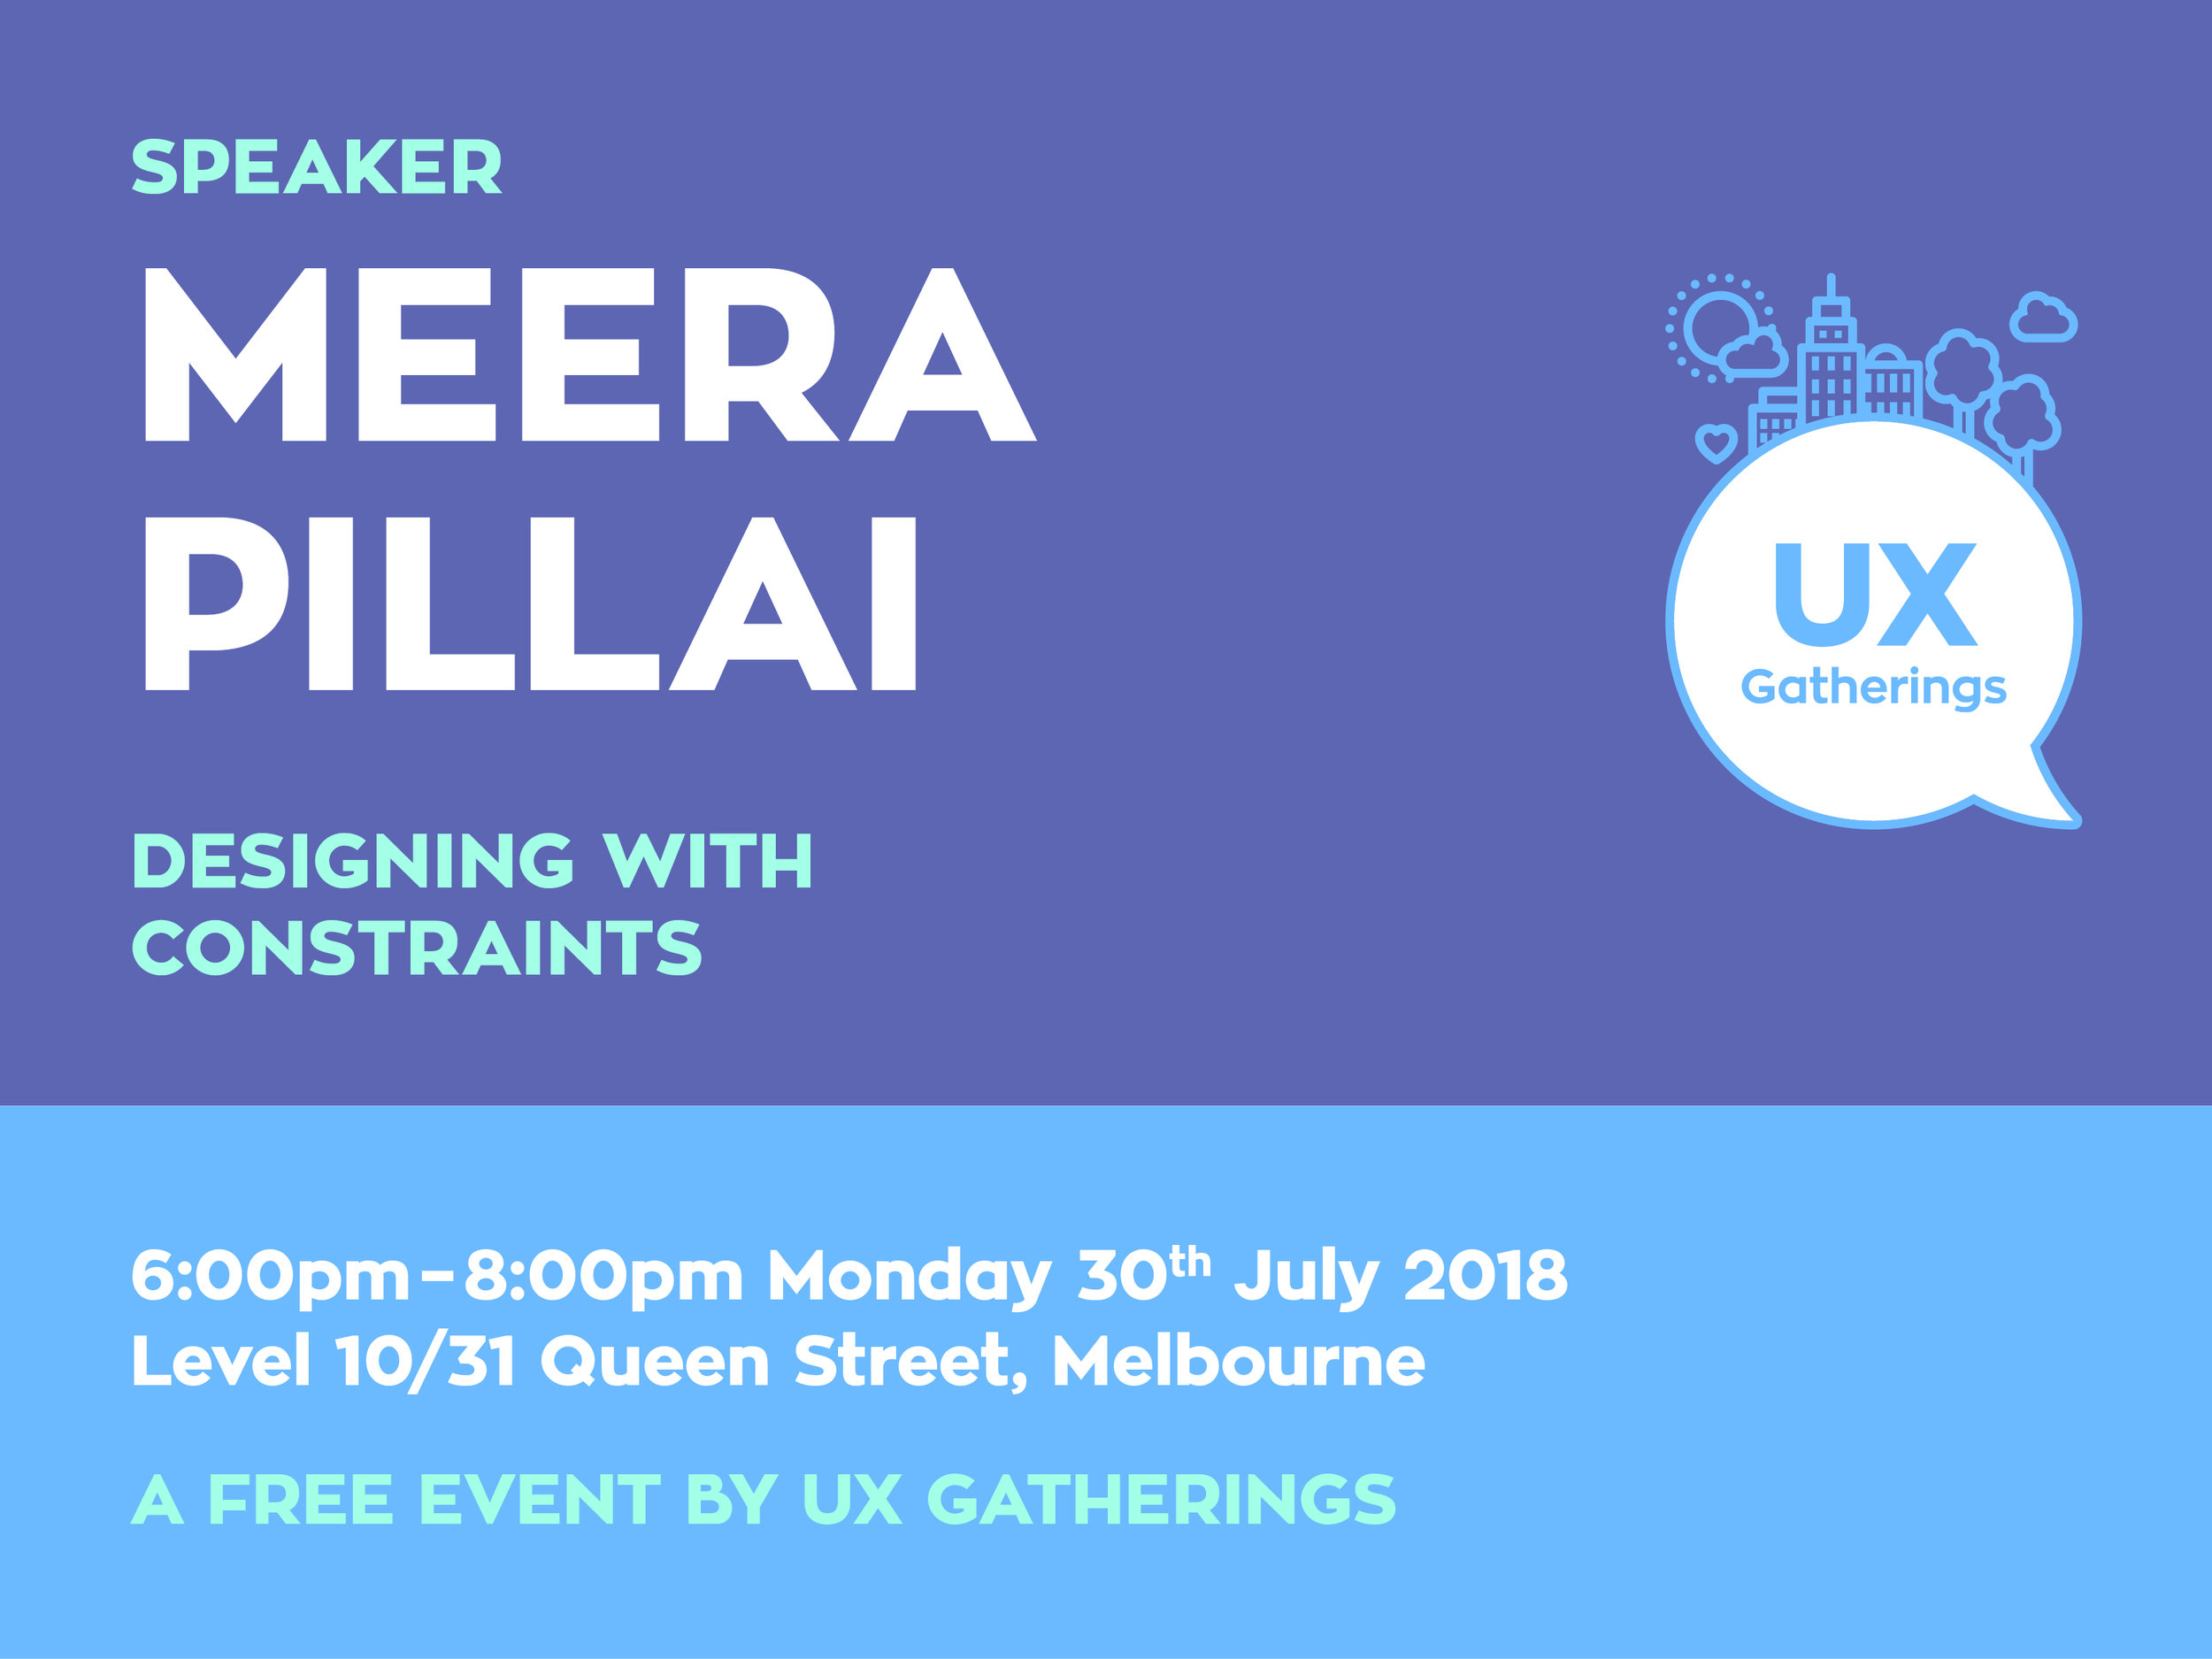 UX-Gatherings_Event_Meera-Pillai_Designing-with-constraints.jpg